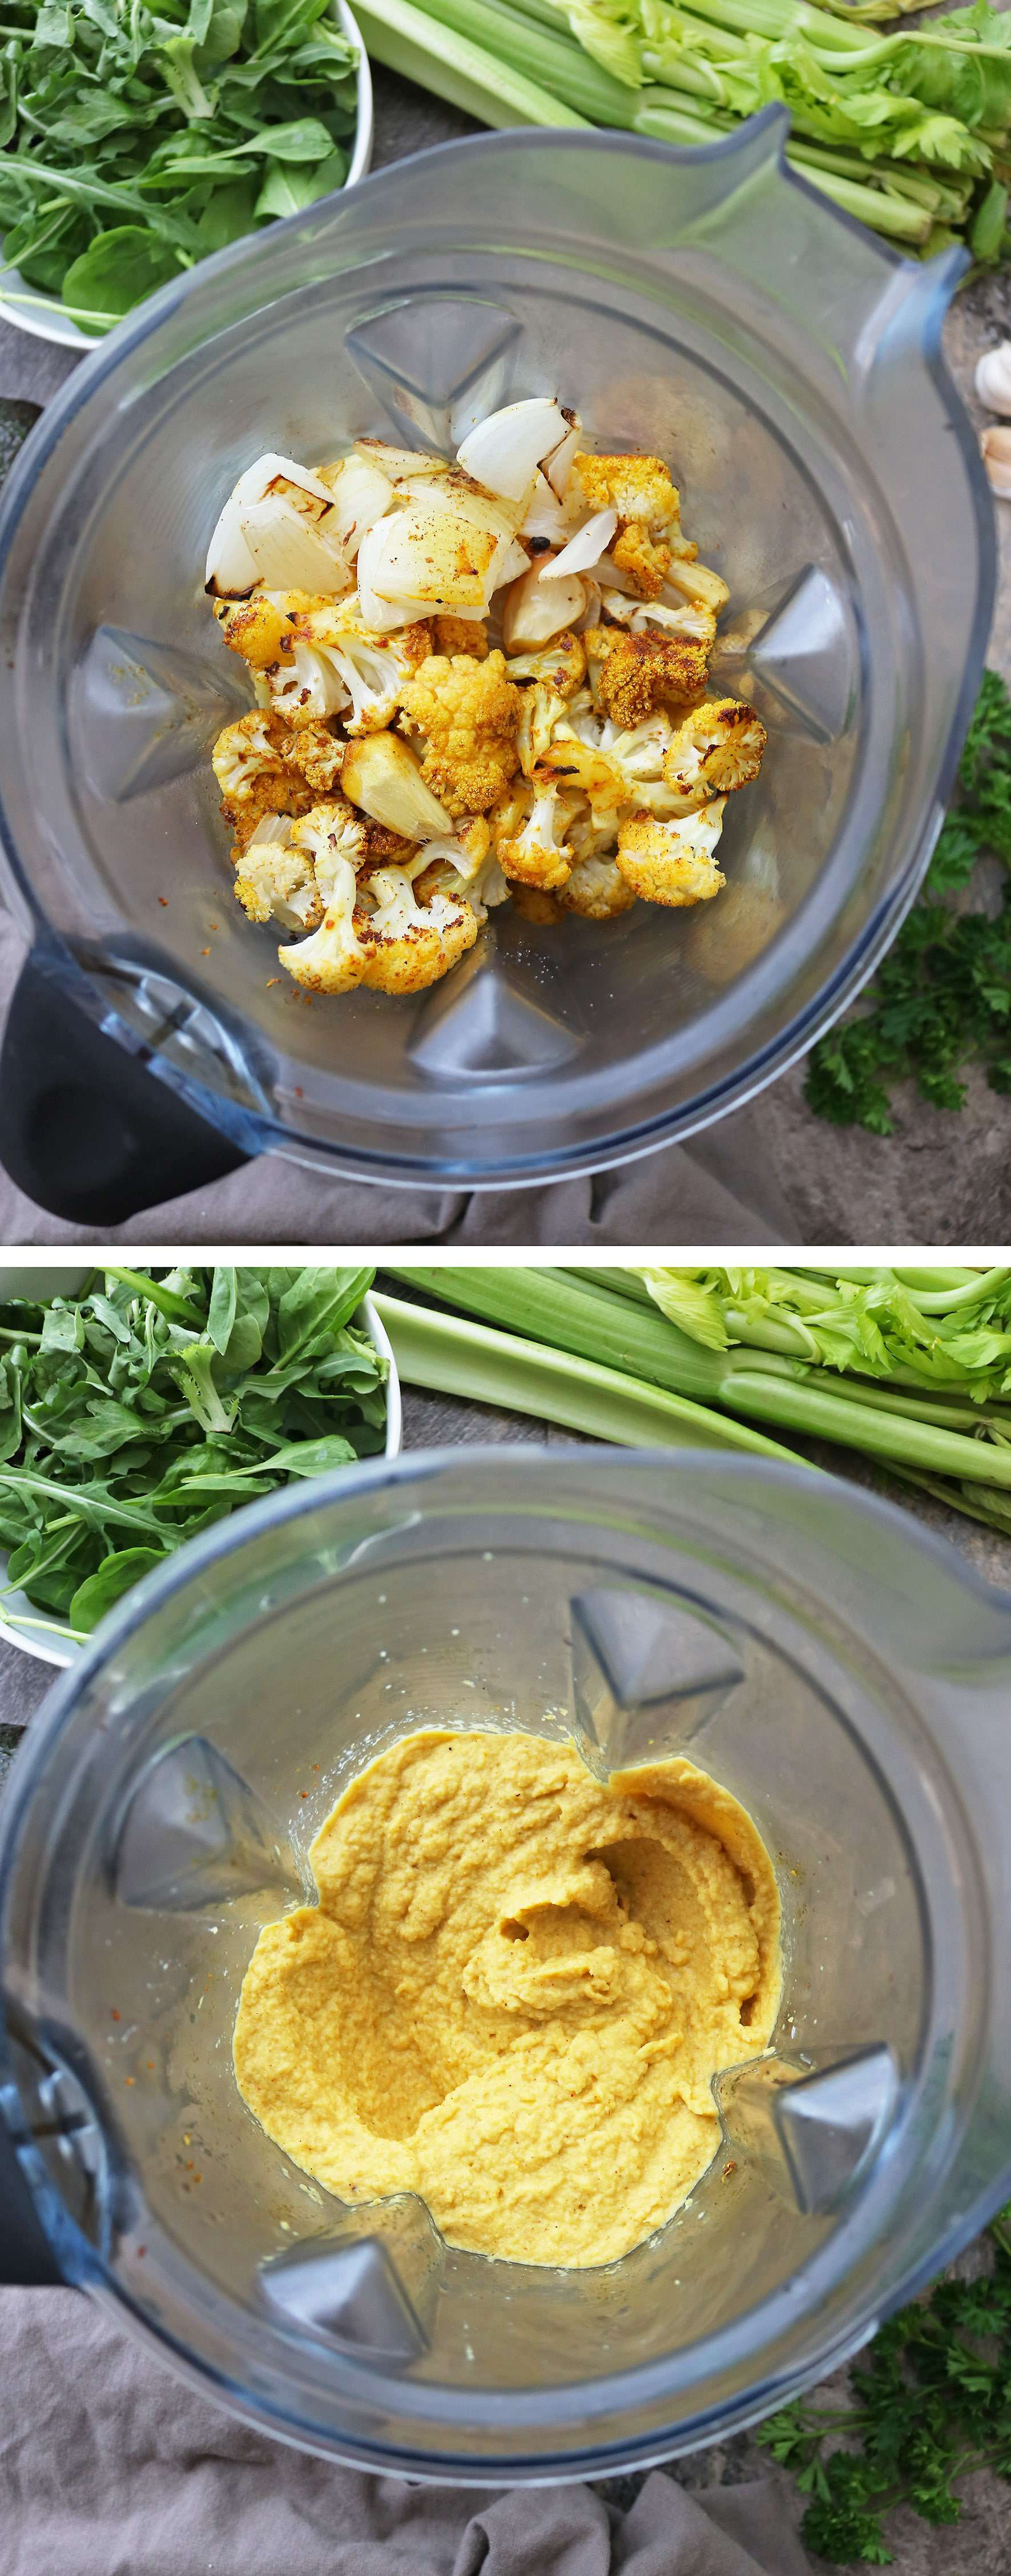 Making Vegan Keto Turmeric Cauliflower Mash in 20 minutes.